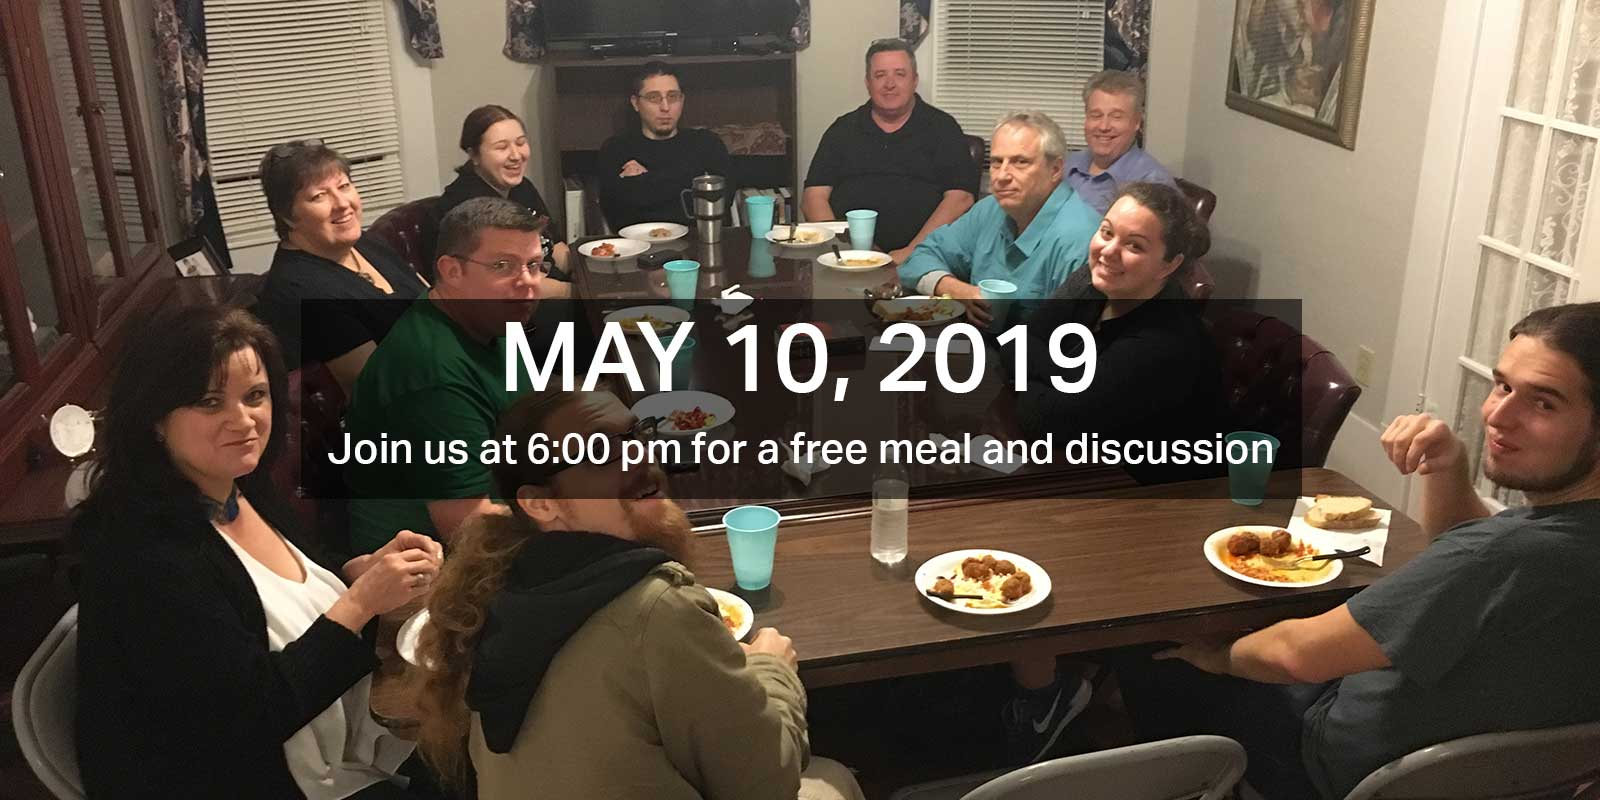 Our next meeting is 5/10/19